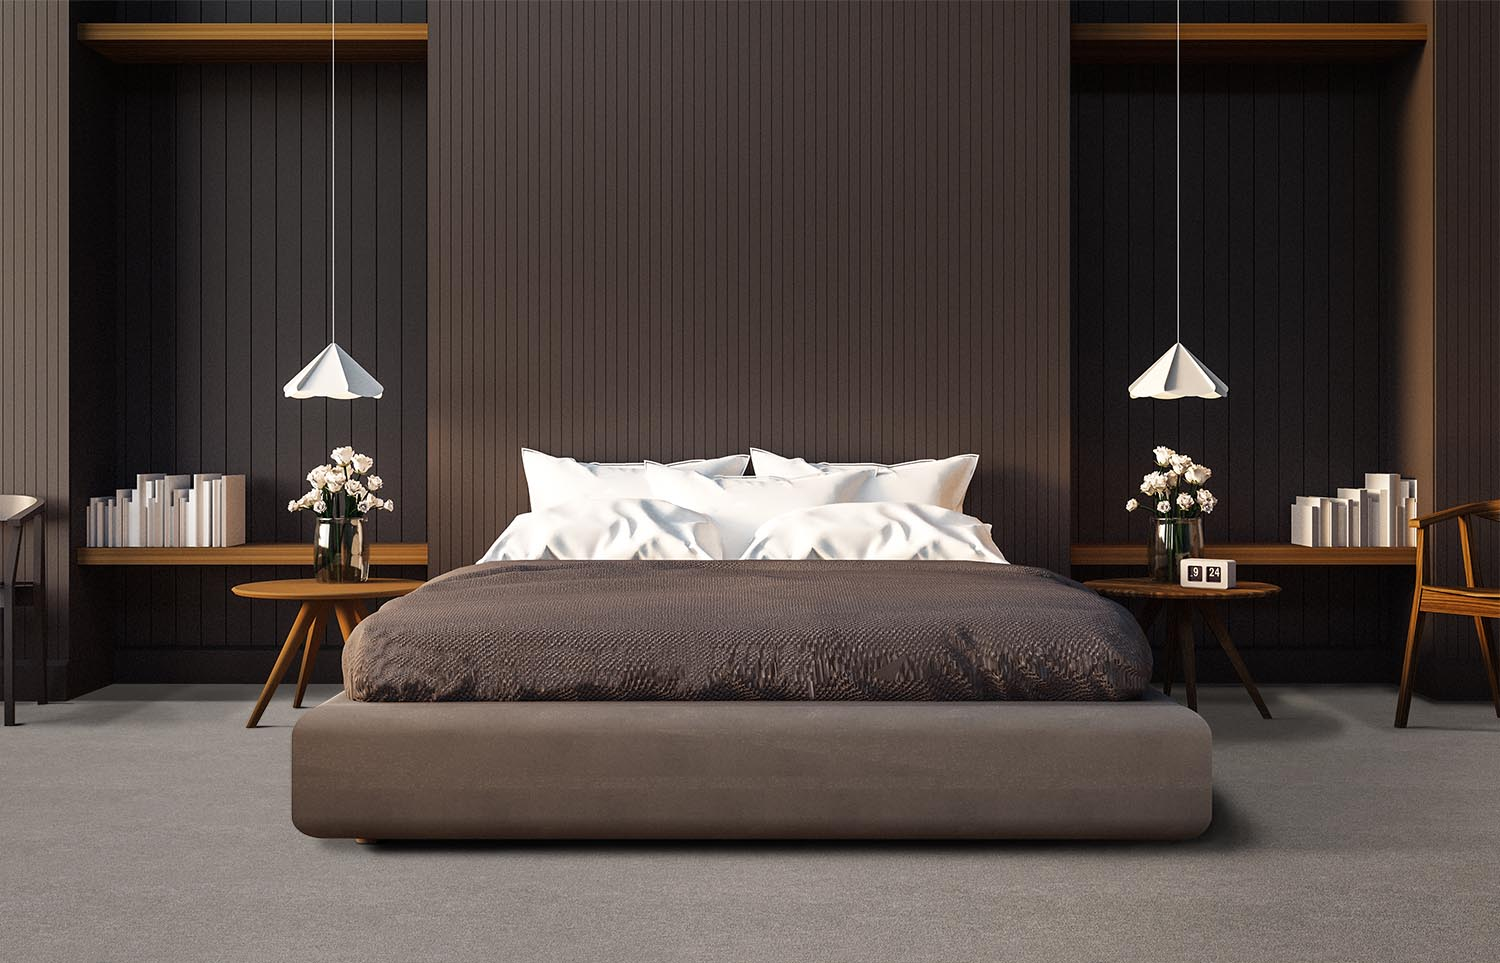 Softology - S201 - Puff contemporary bedroom